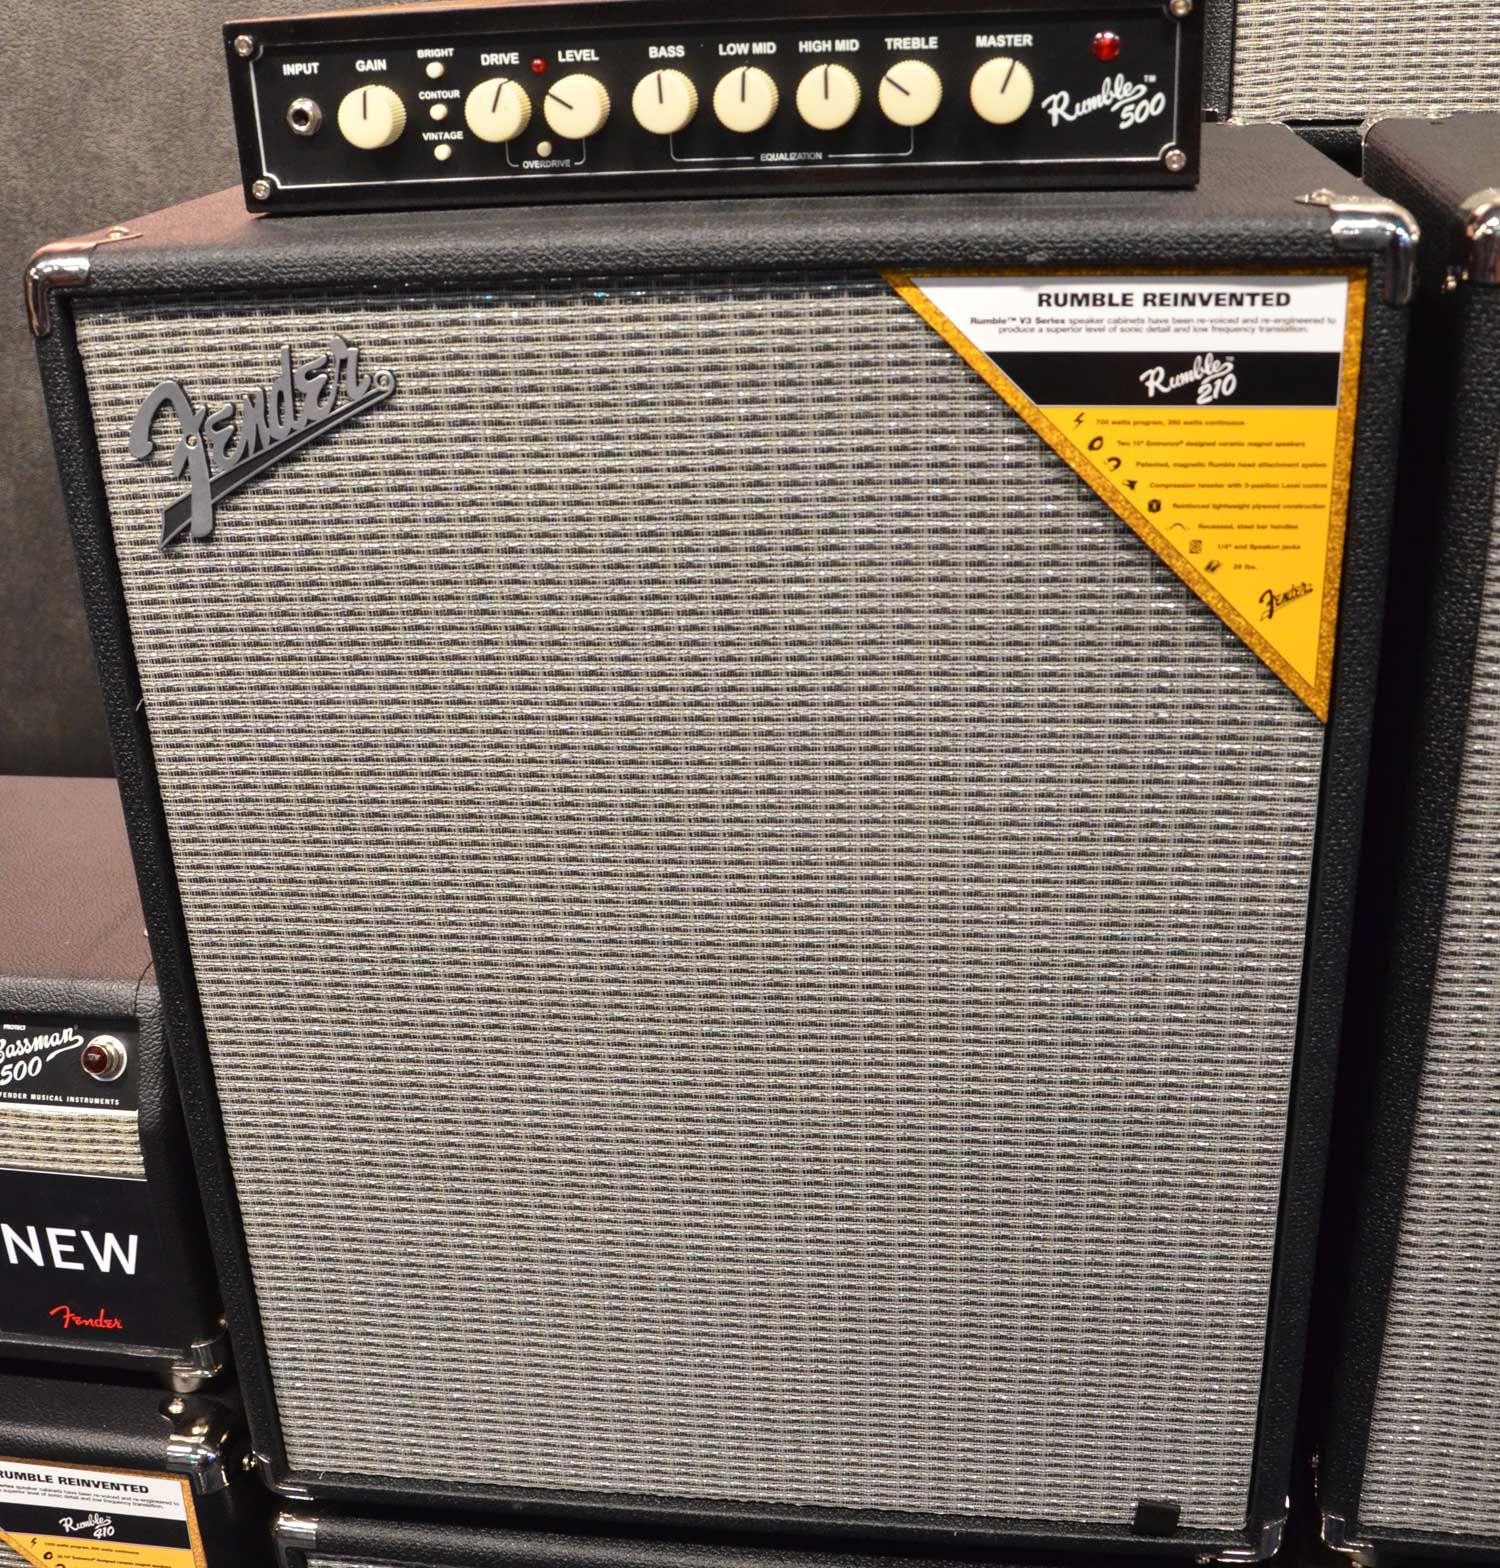 Fender Rumble 500 Bass Amp & Fender Rumble 210 Bass Cabinet | Bass ...